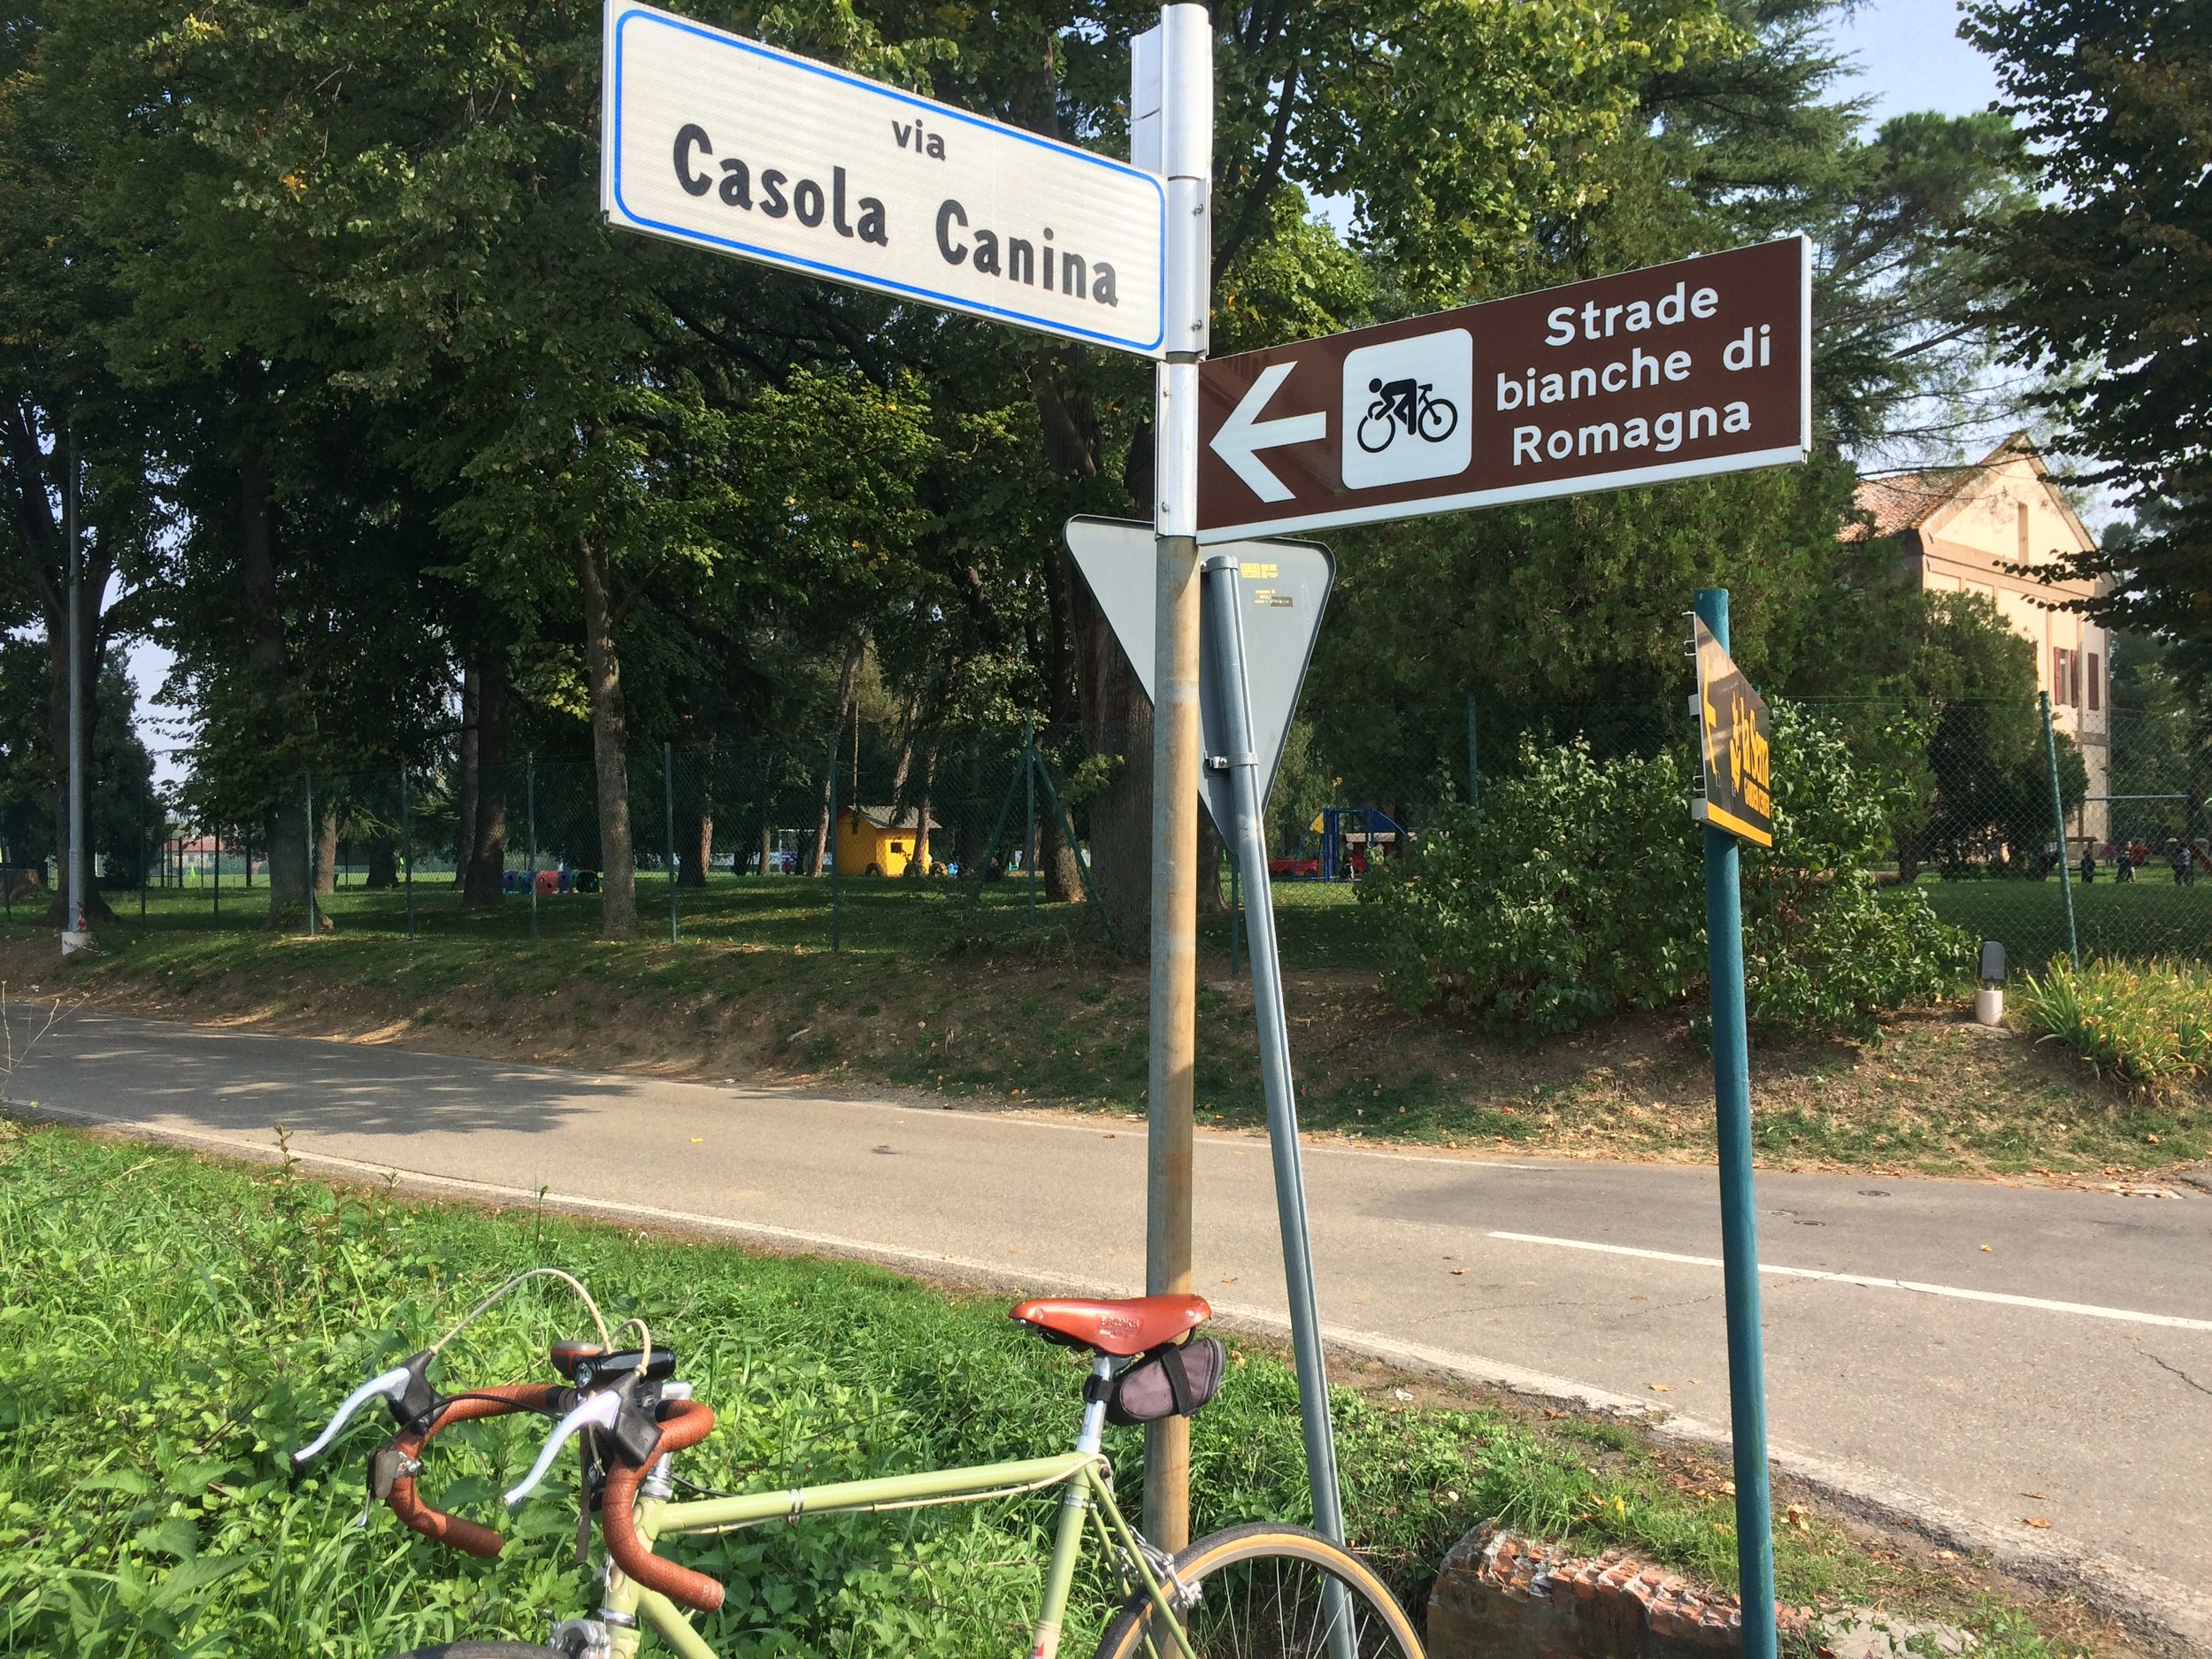 This is a popular cycling region